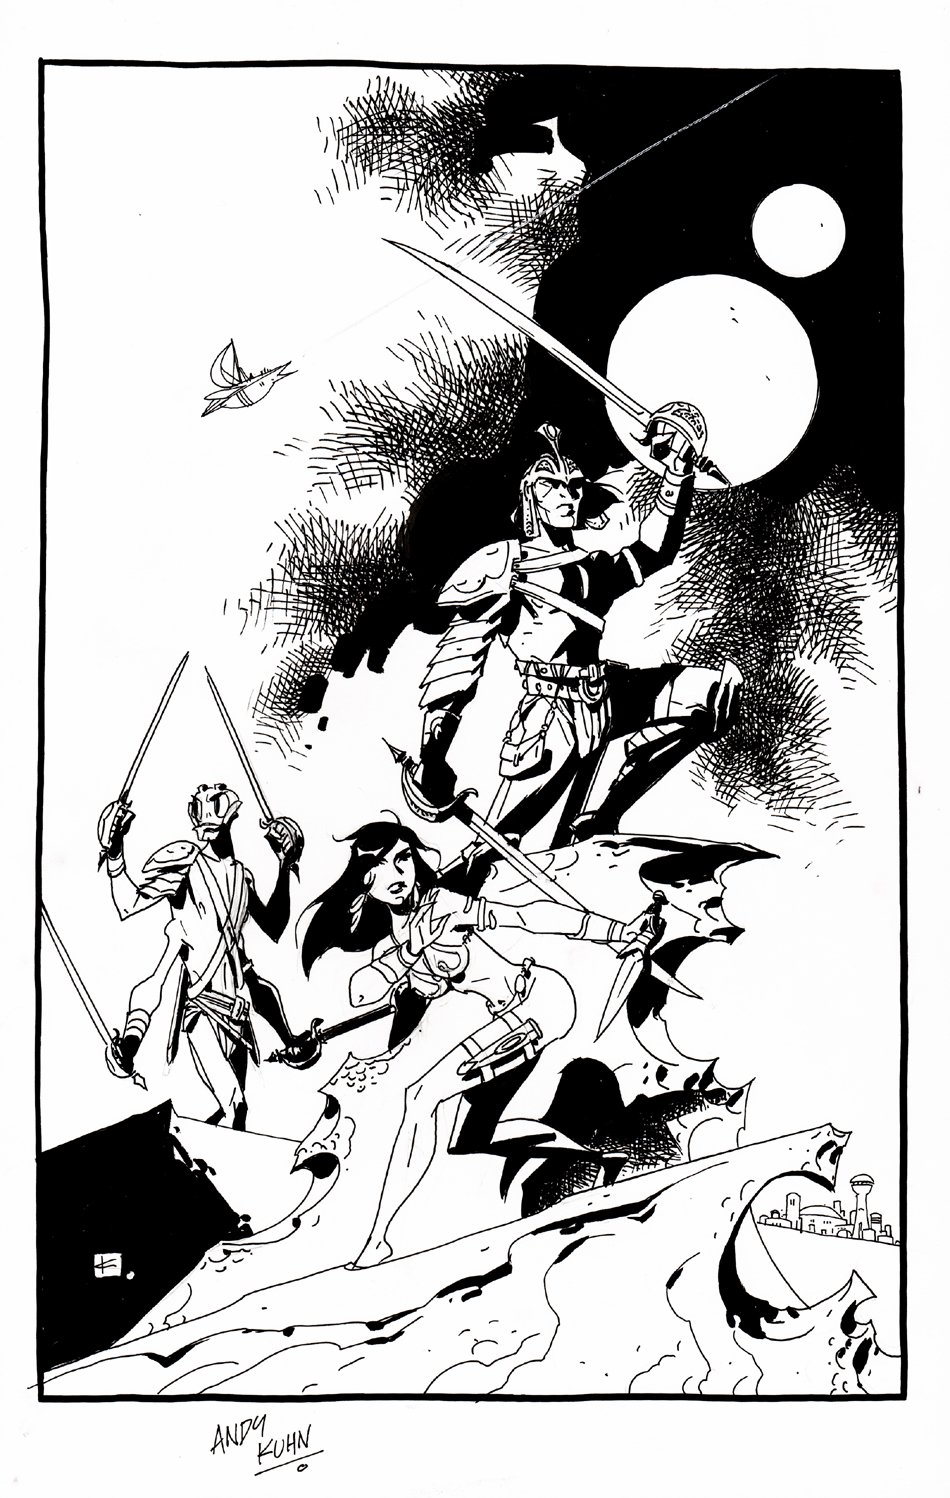 John Carter of Mars Published Cover